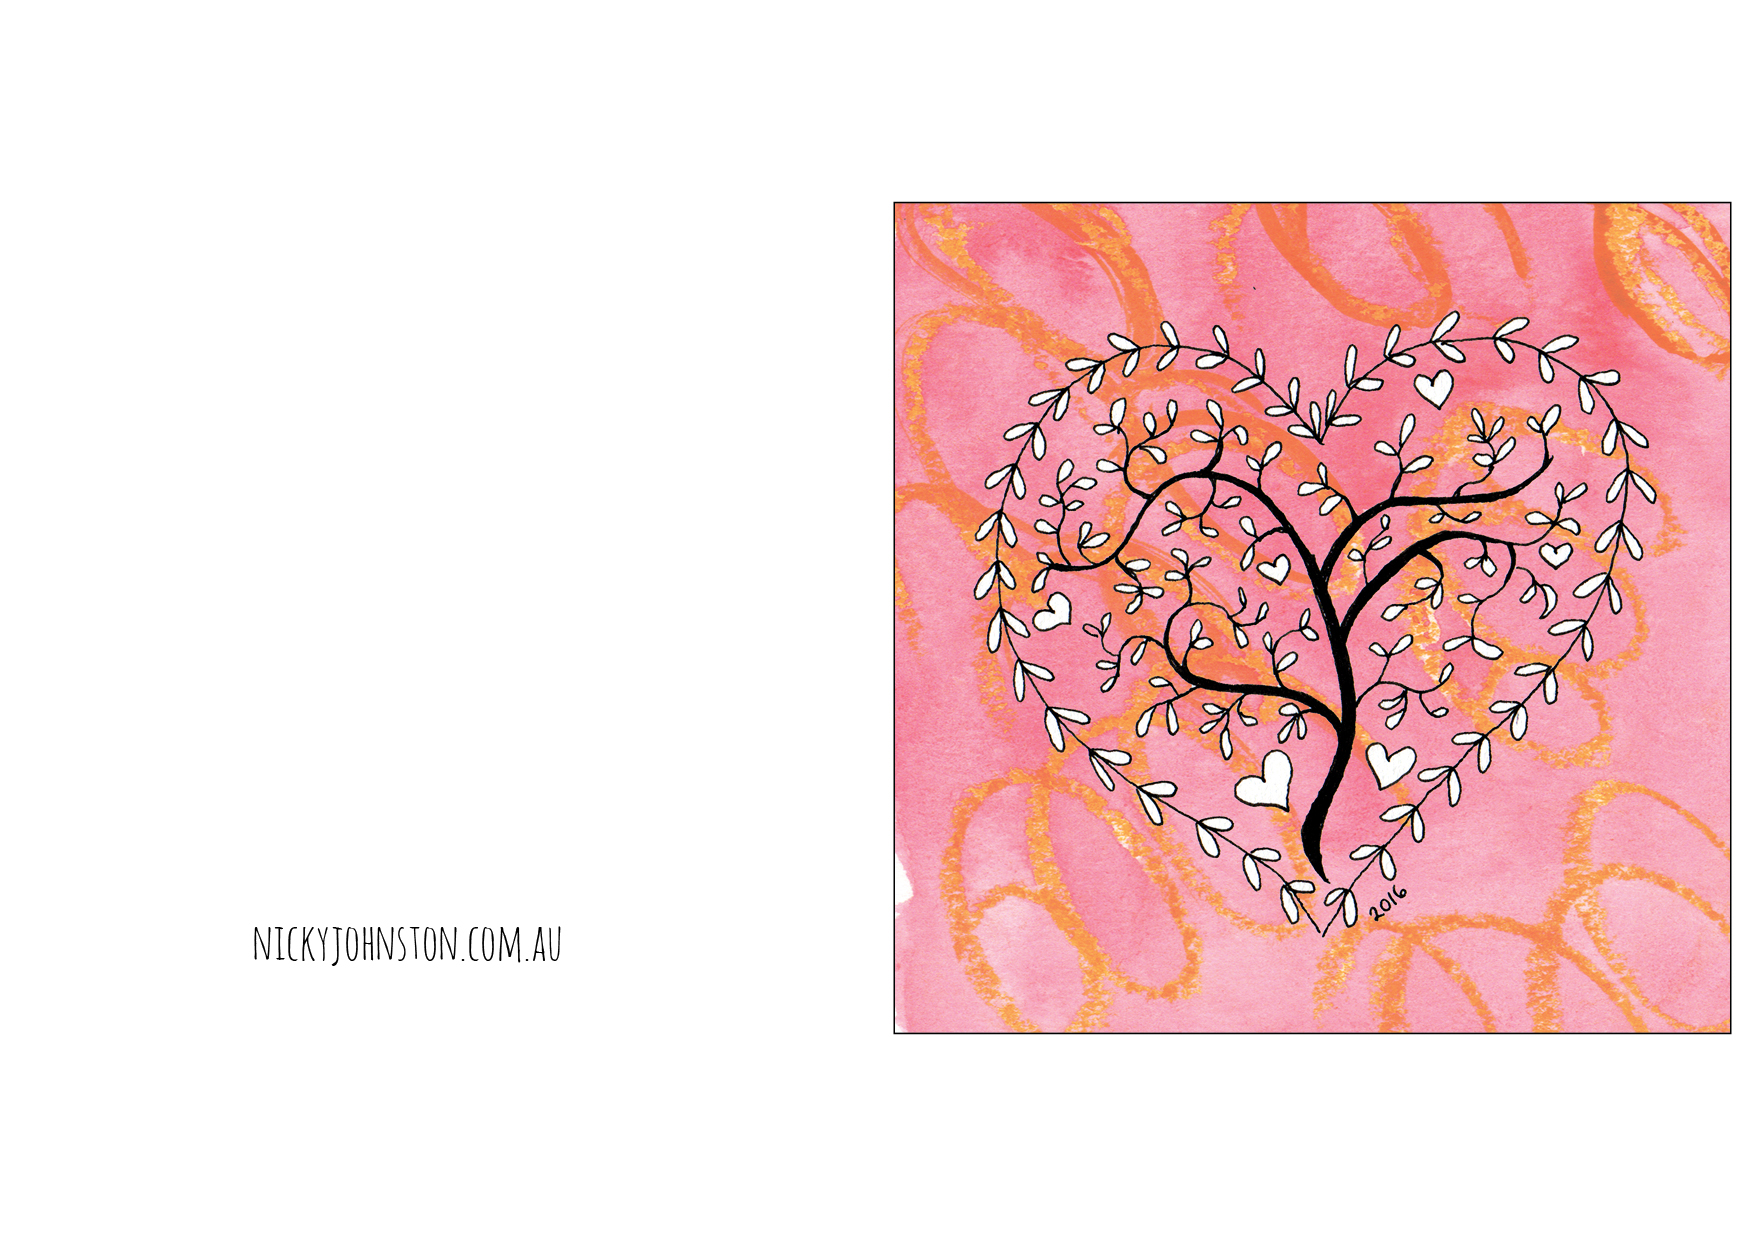 Heart_Card_2016-nicky-johnston